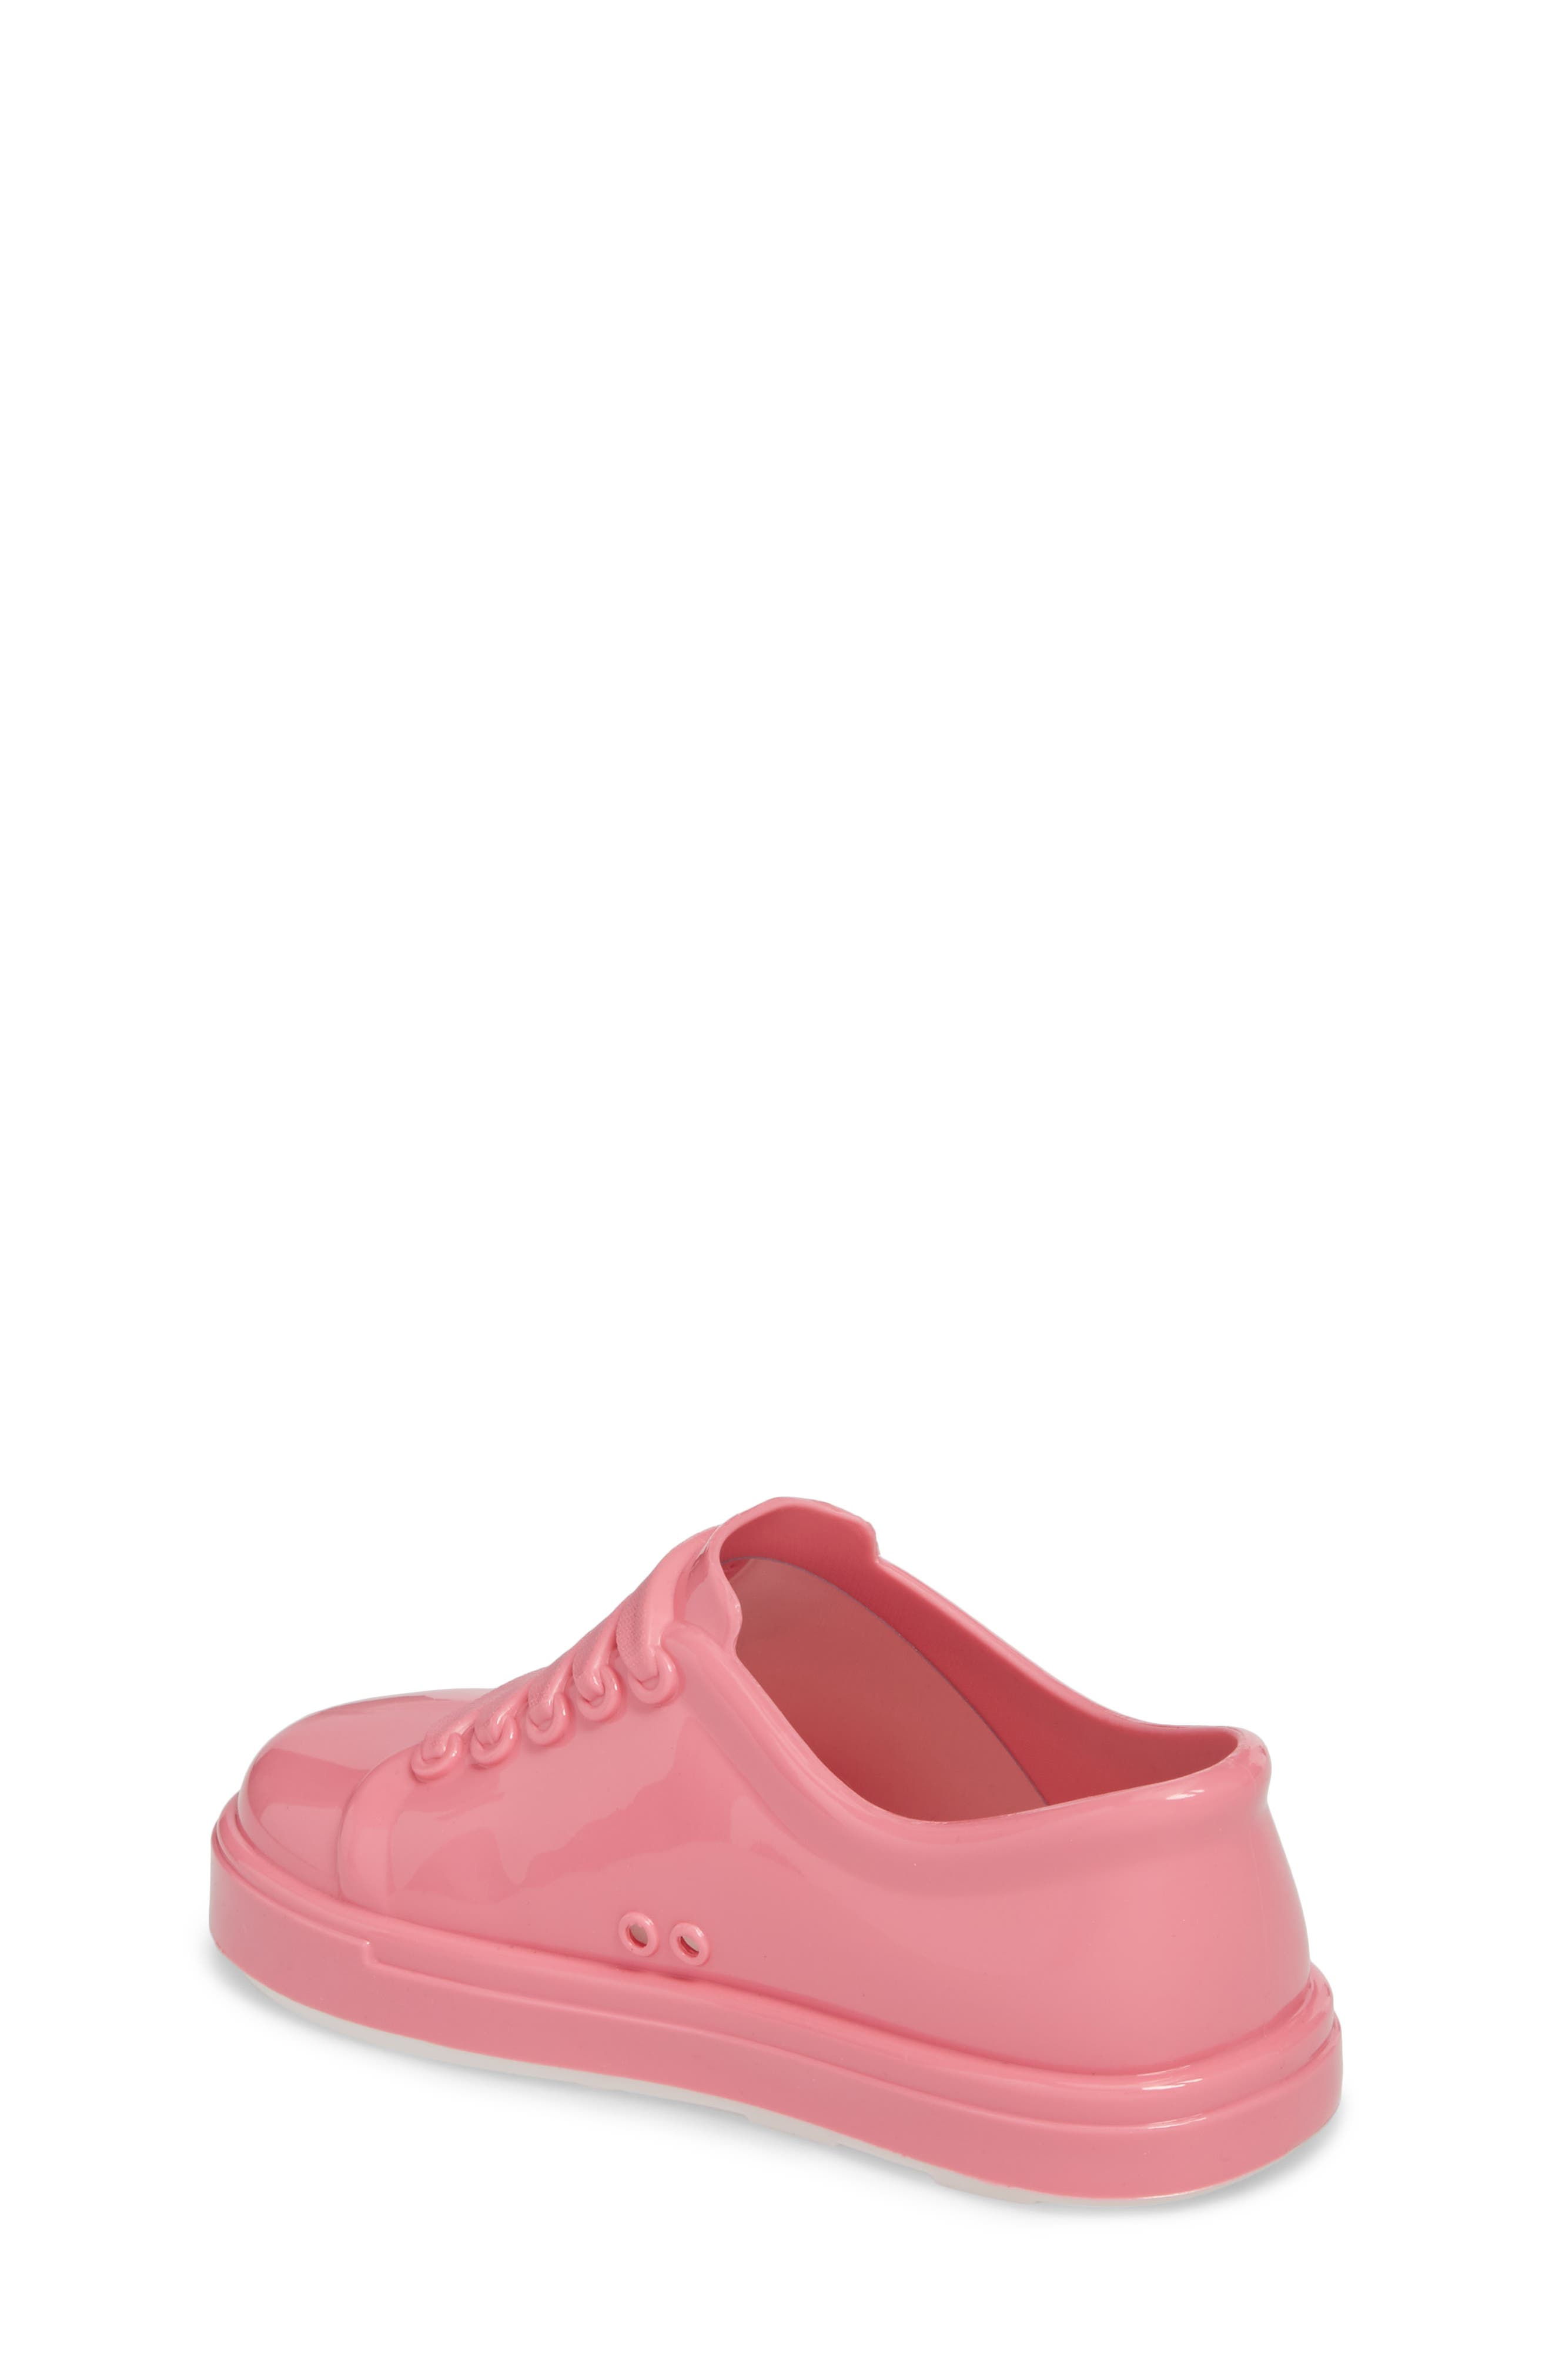 Be Slip-On Sneaker,                             Alternate thumbnail 2, color,                             Pink Candy